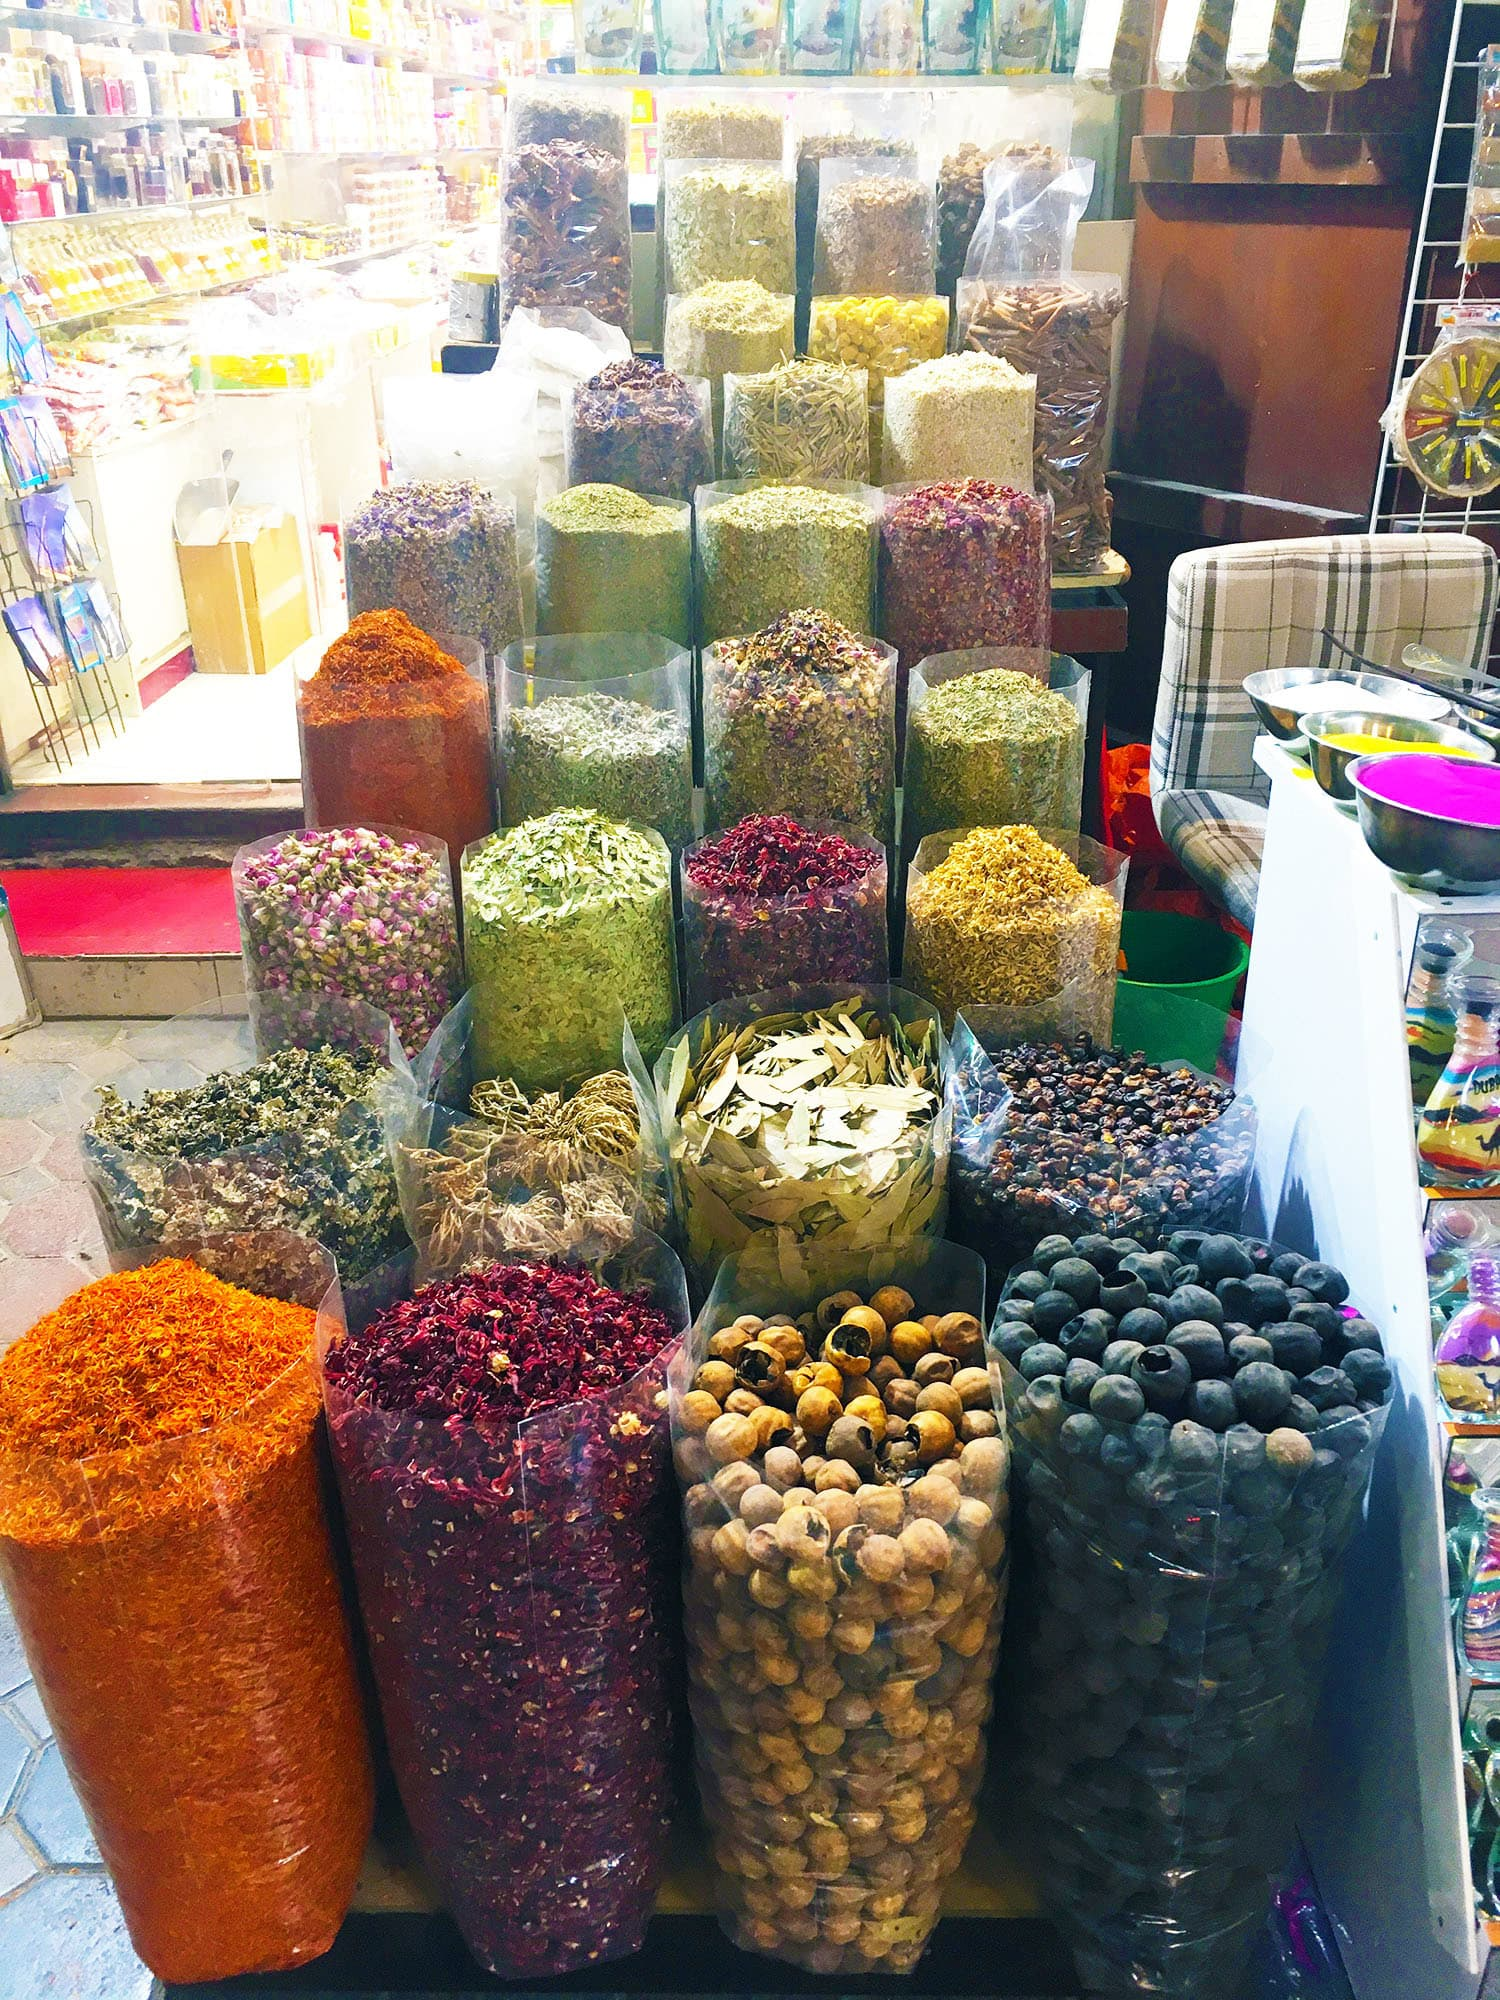 The *souks* in Dubai are famous for fragrant herbs and spices.